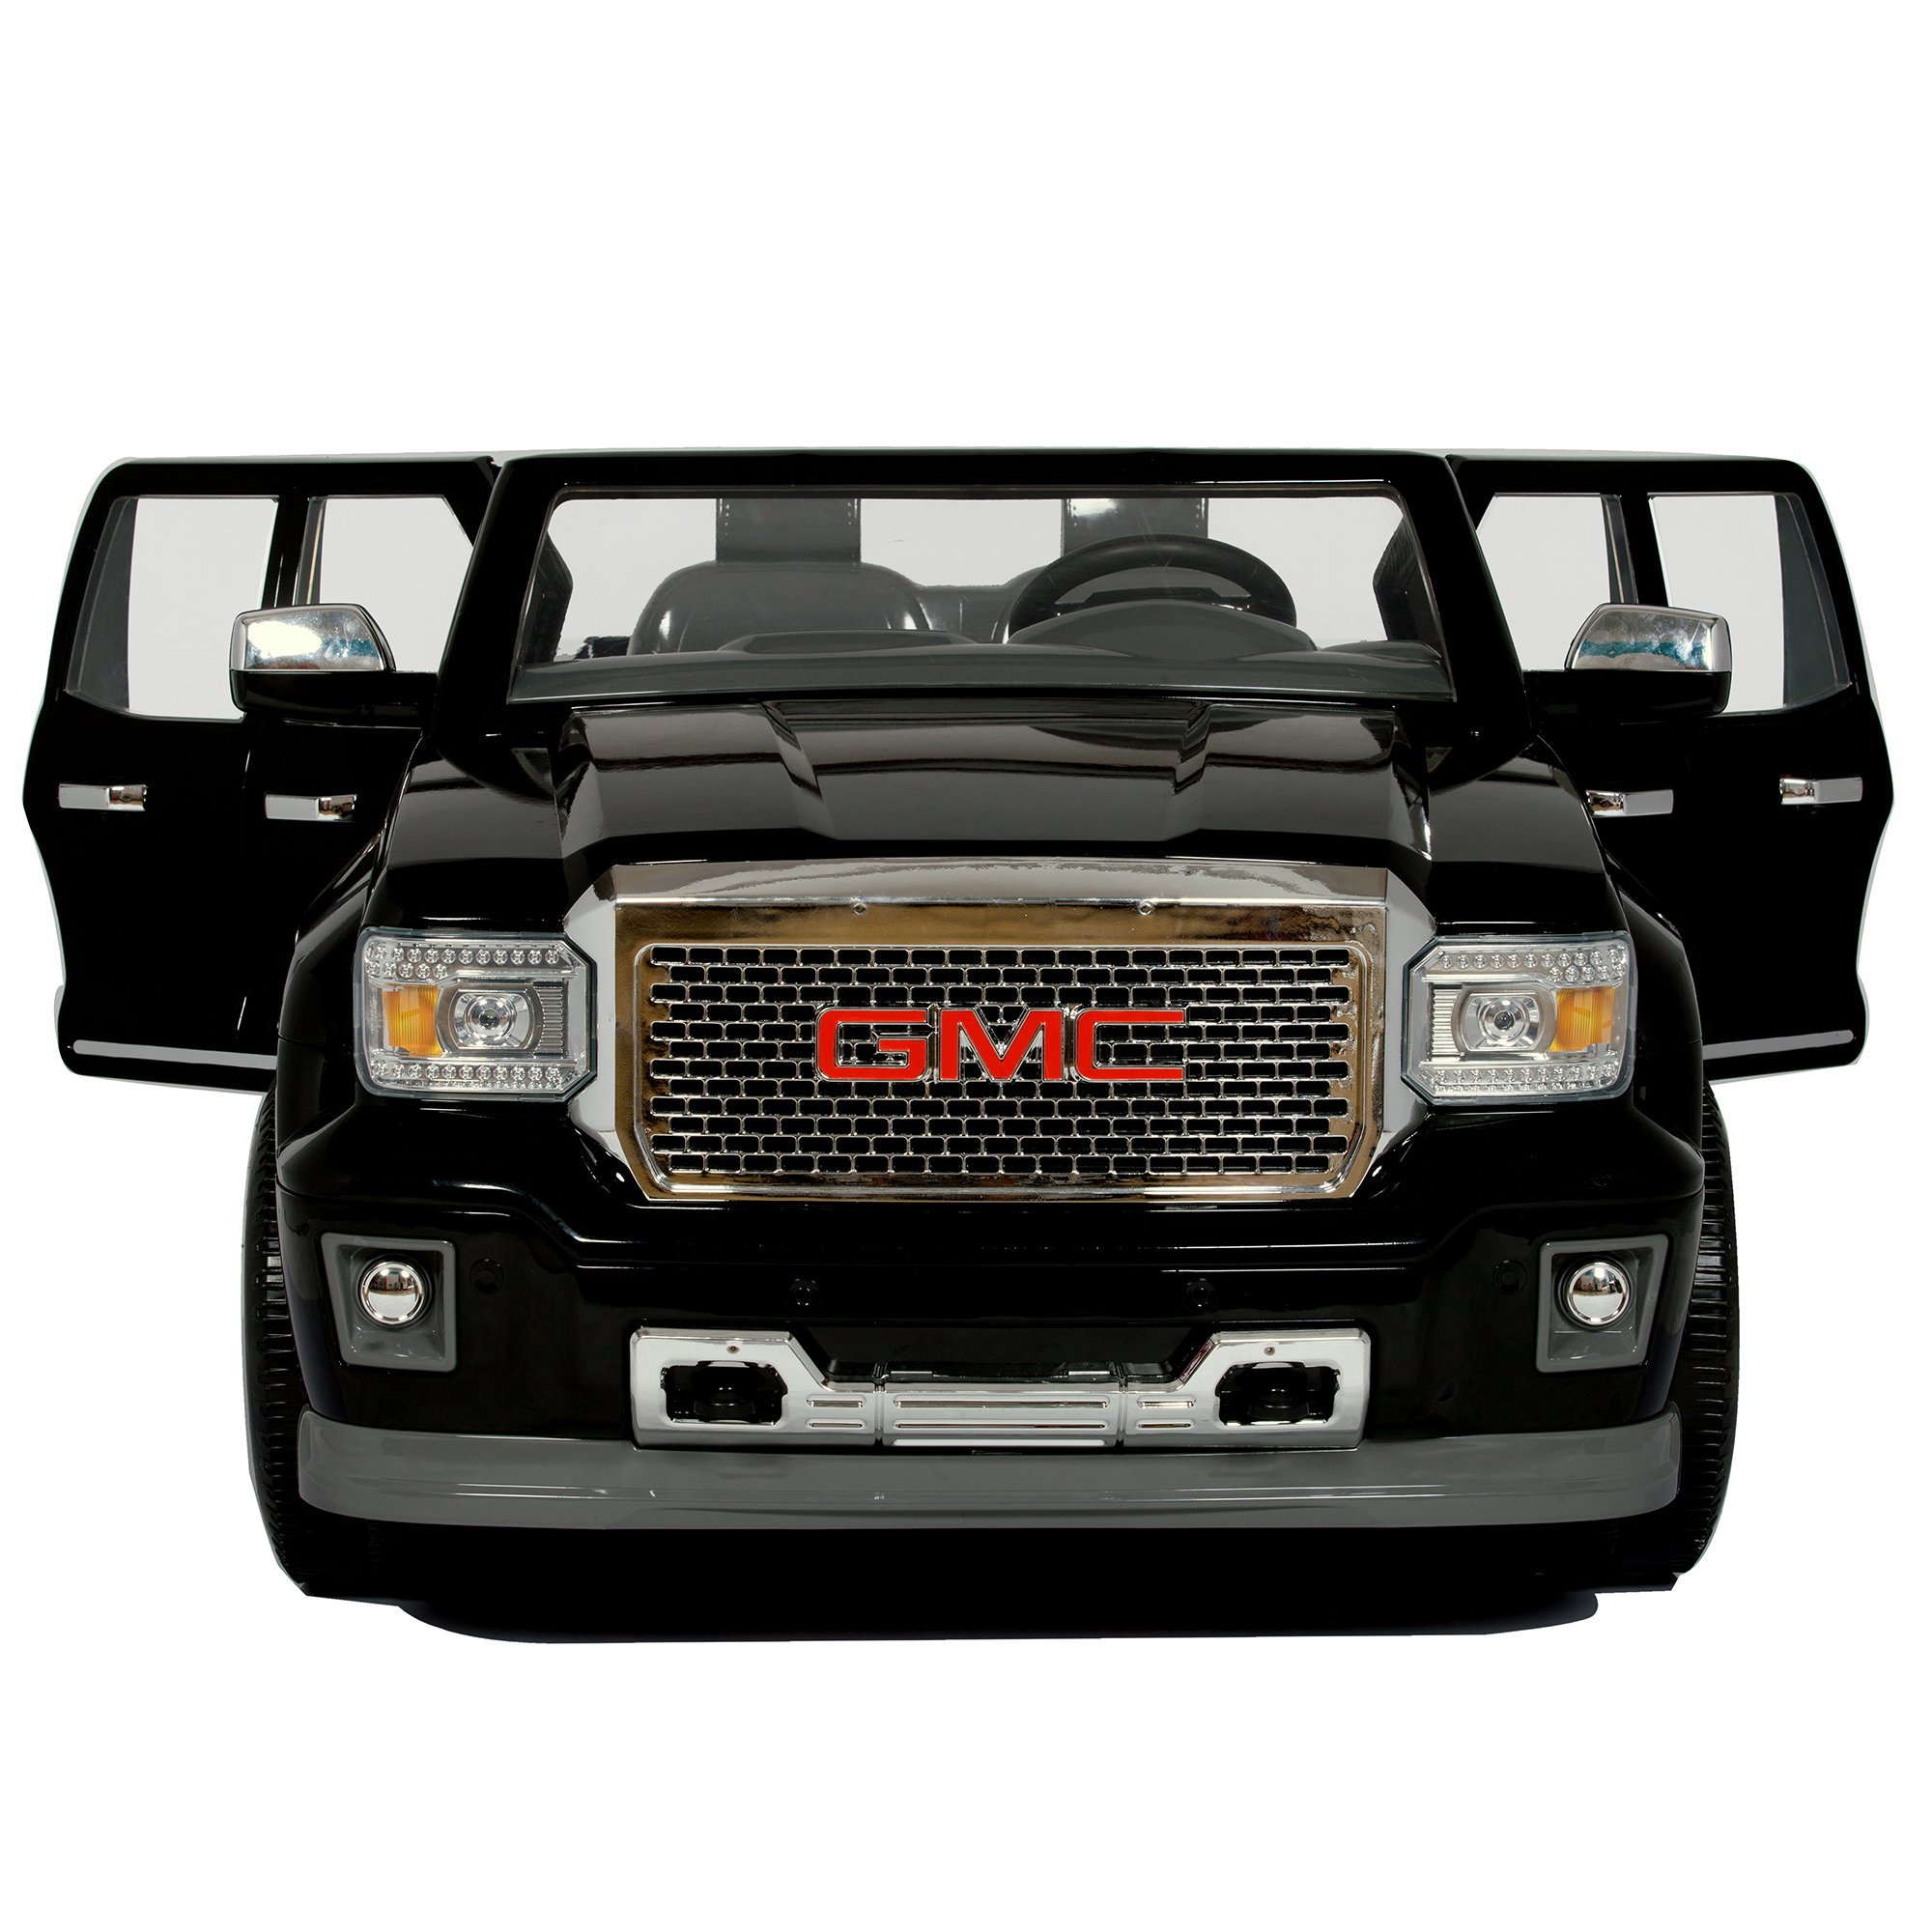 Rollplay GMC Sierra Denali 12-Volt Battery-Powered Ride-On, Black by Rollplay (Image #3)